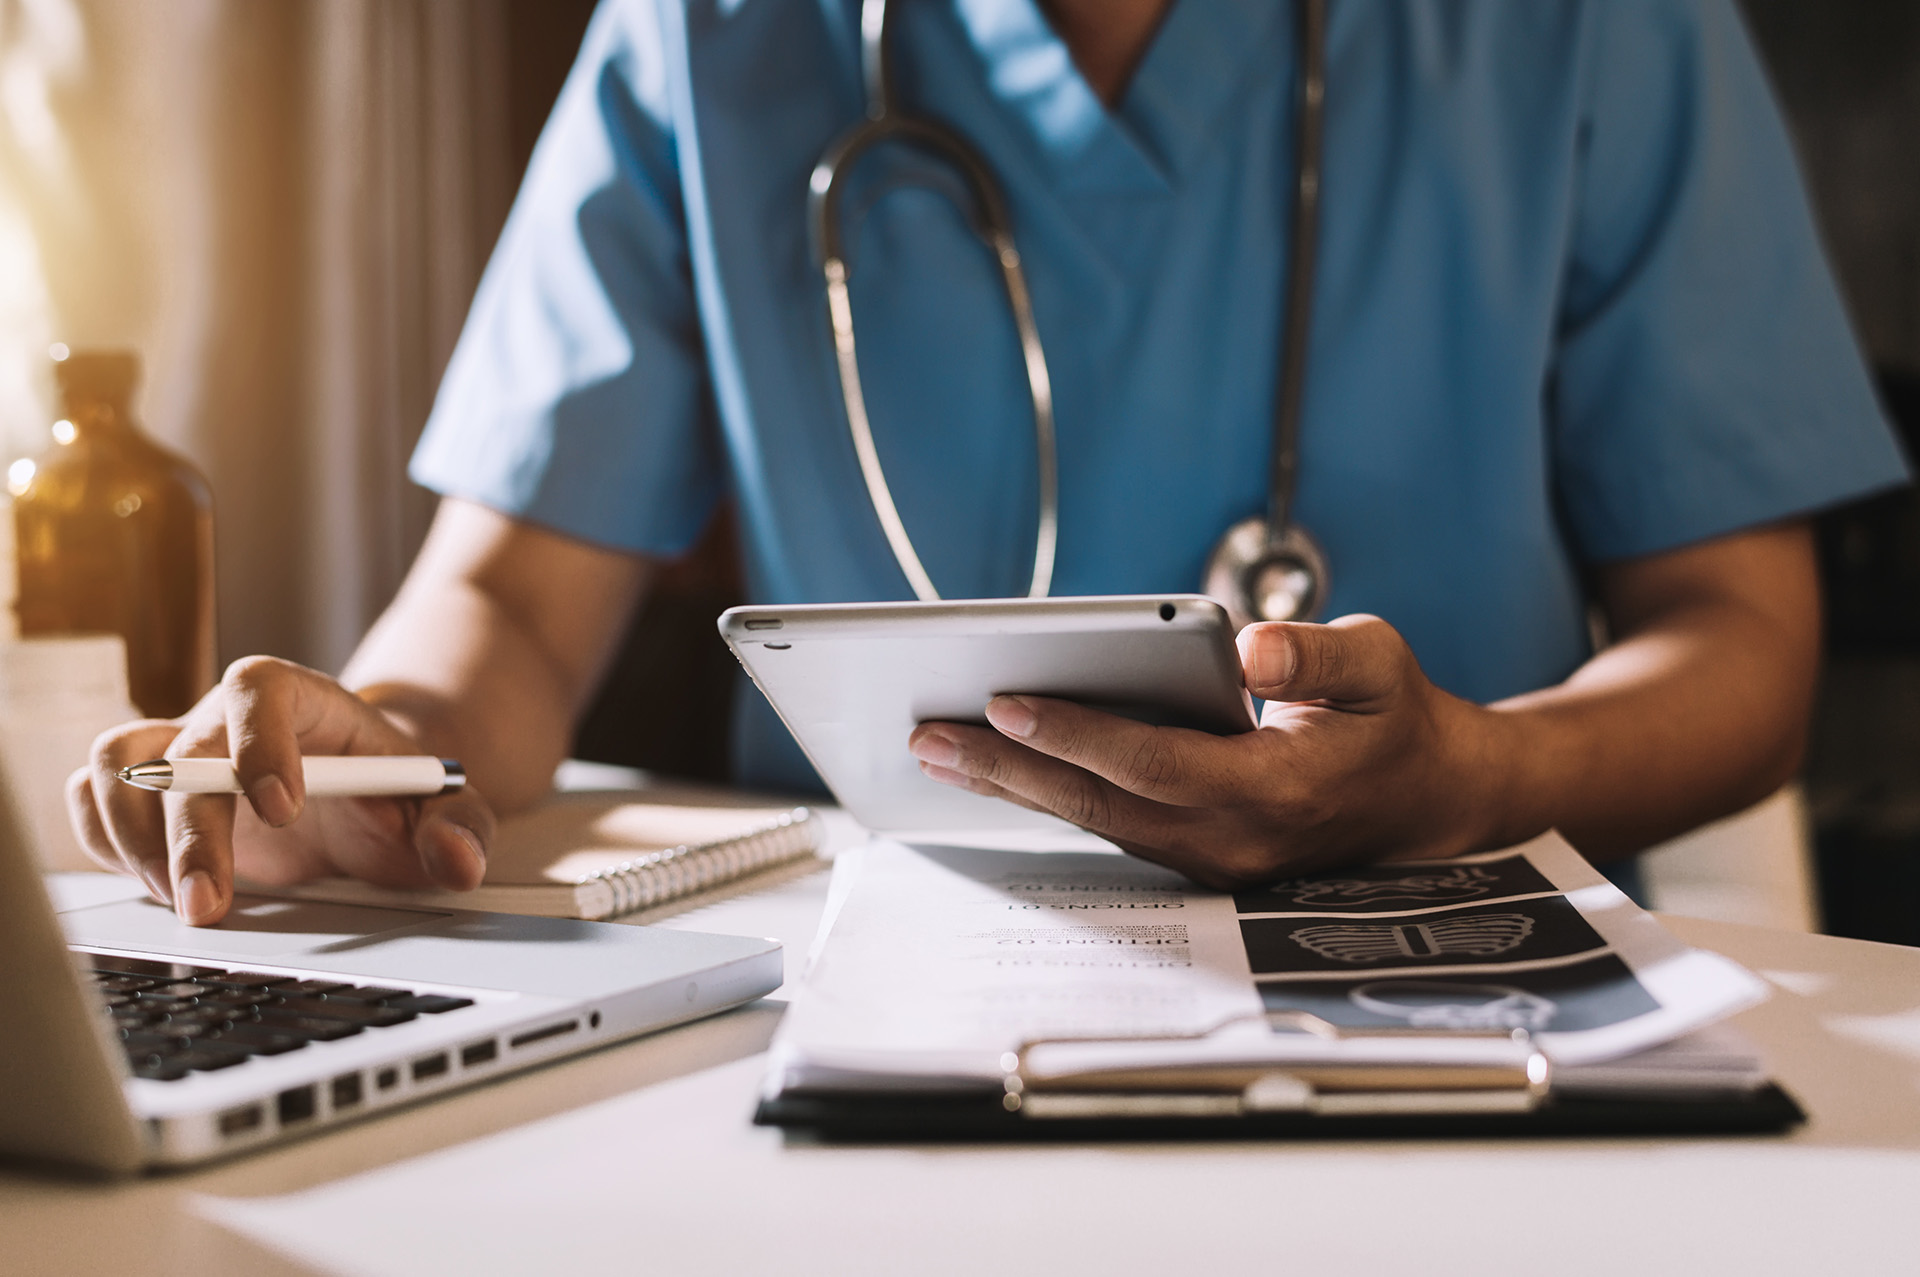 Health professional entering data into a laptop